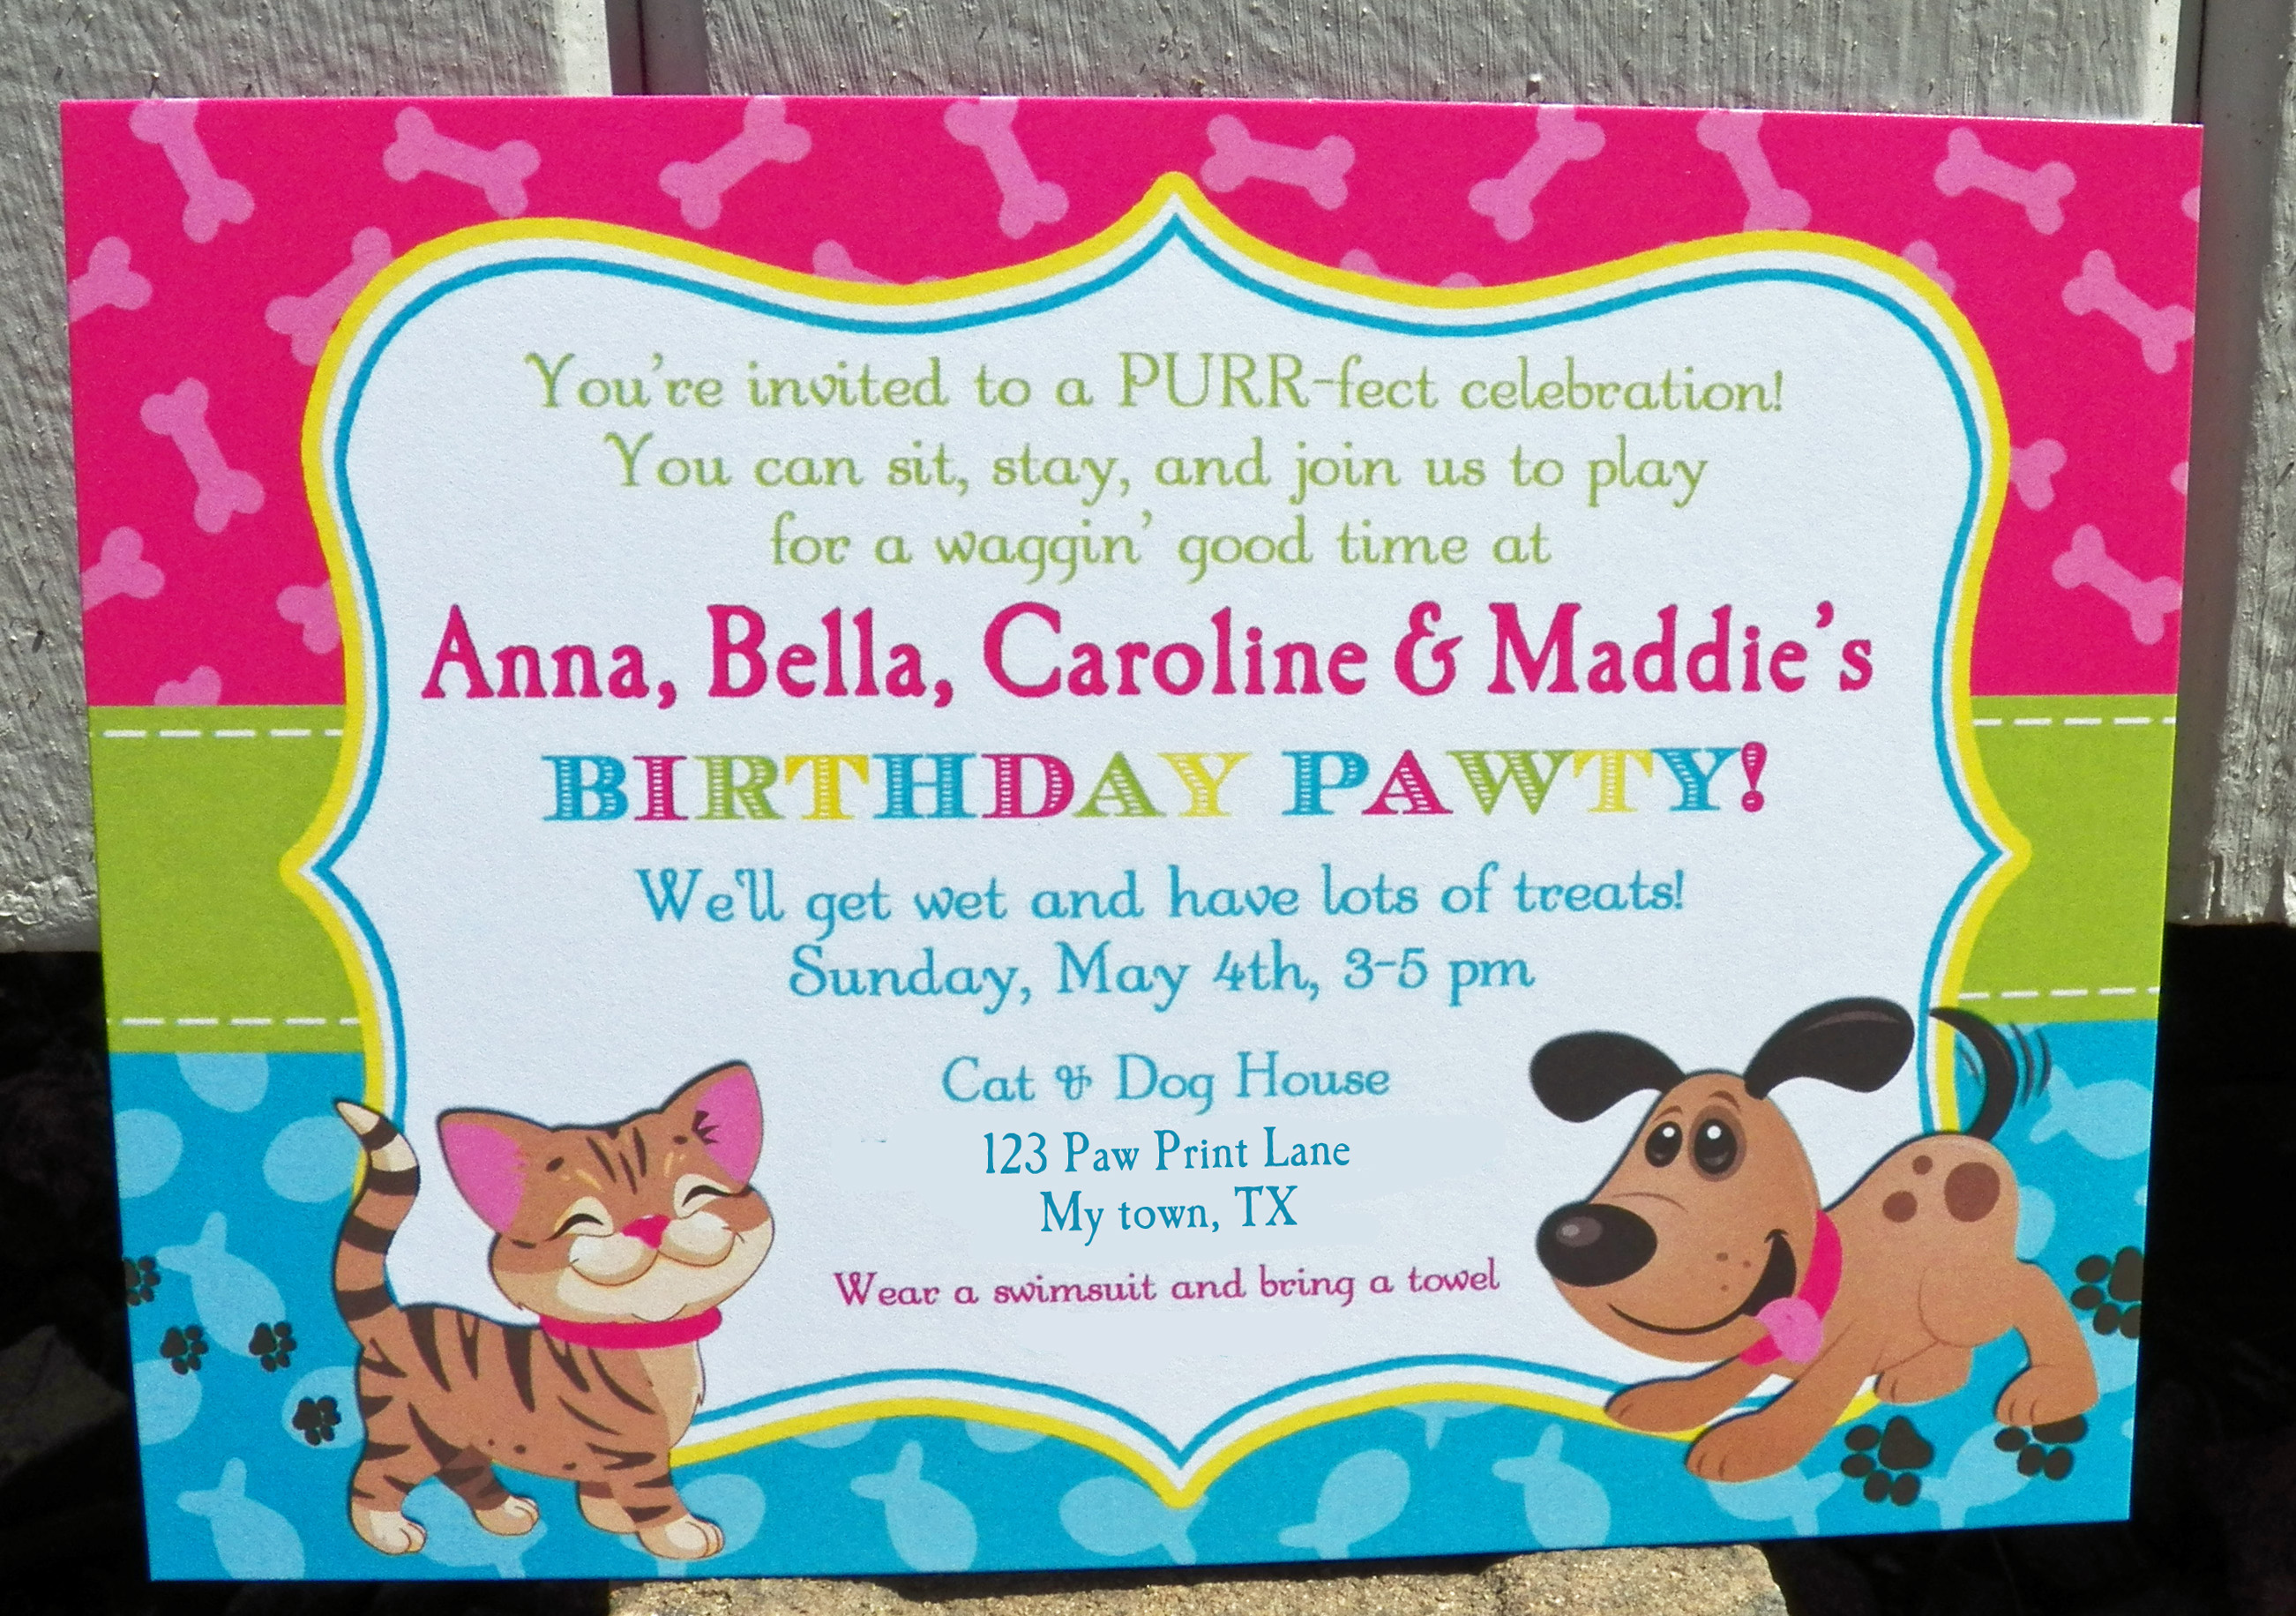 Cats and Dogs Birthday PAWty That Party Chick – Puppy Dog Birthday Invitations